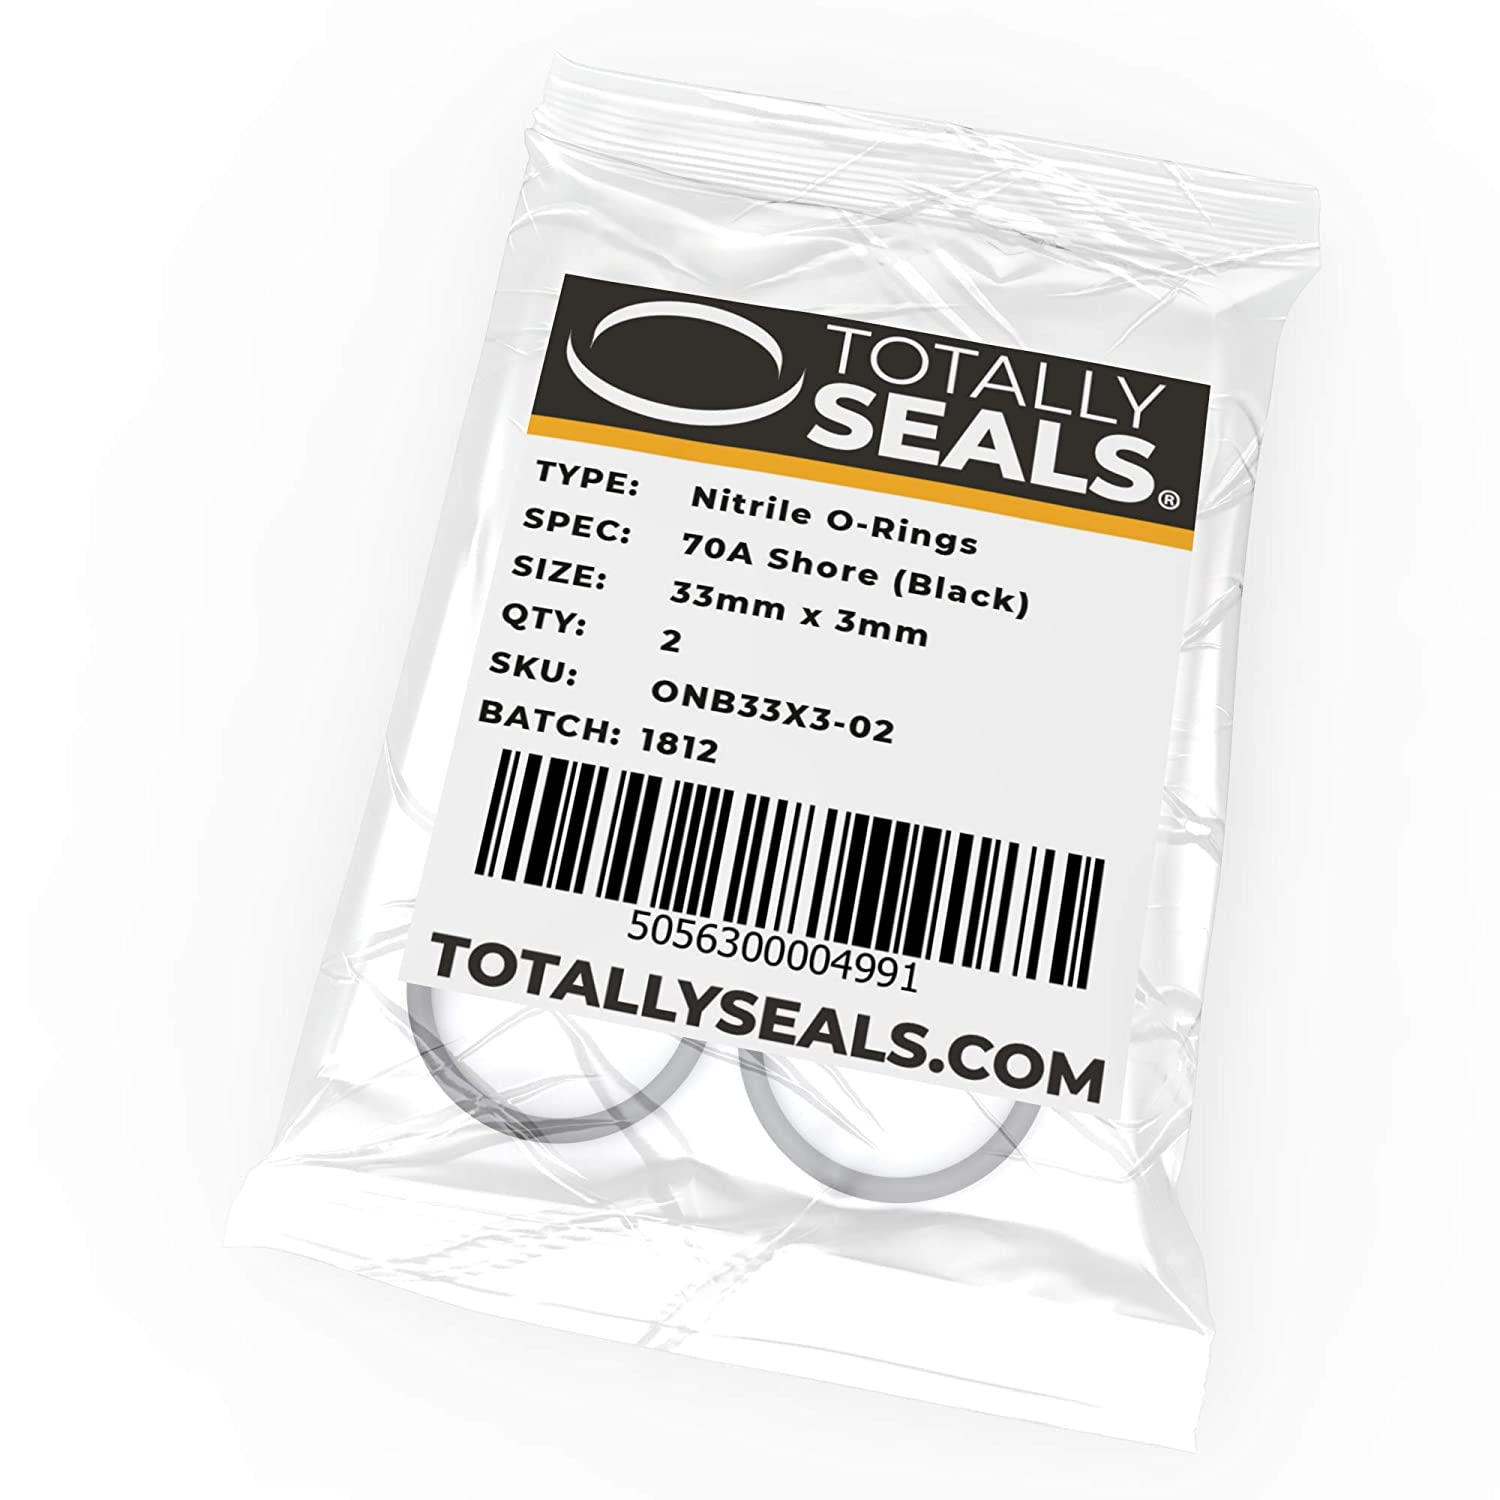 33mm x 3mm (39mm OD) Nitrile Rubber O-Rings 70A Shore Hardness - Pack of 10